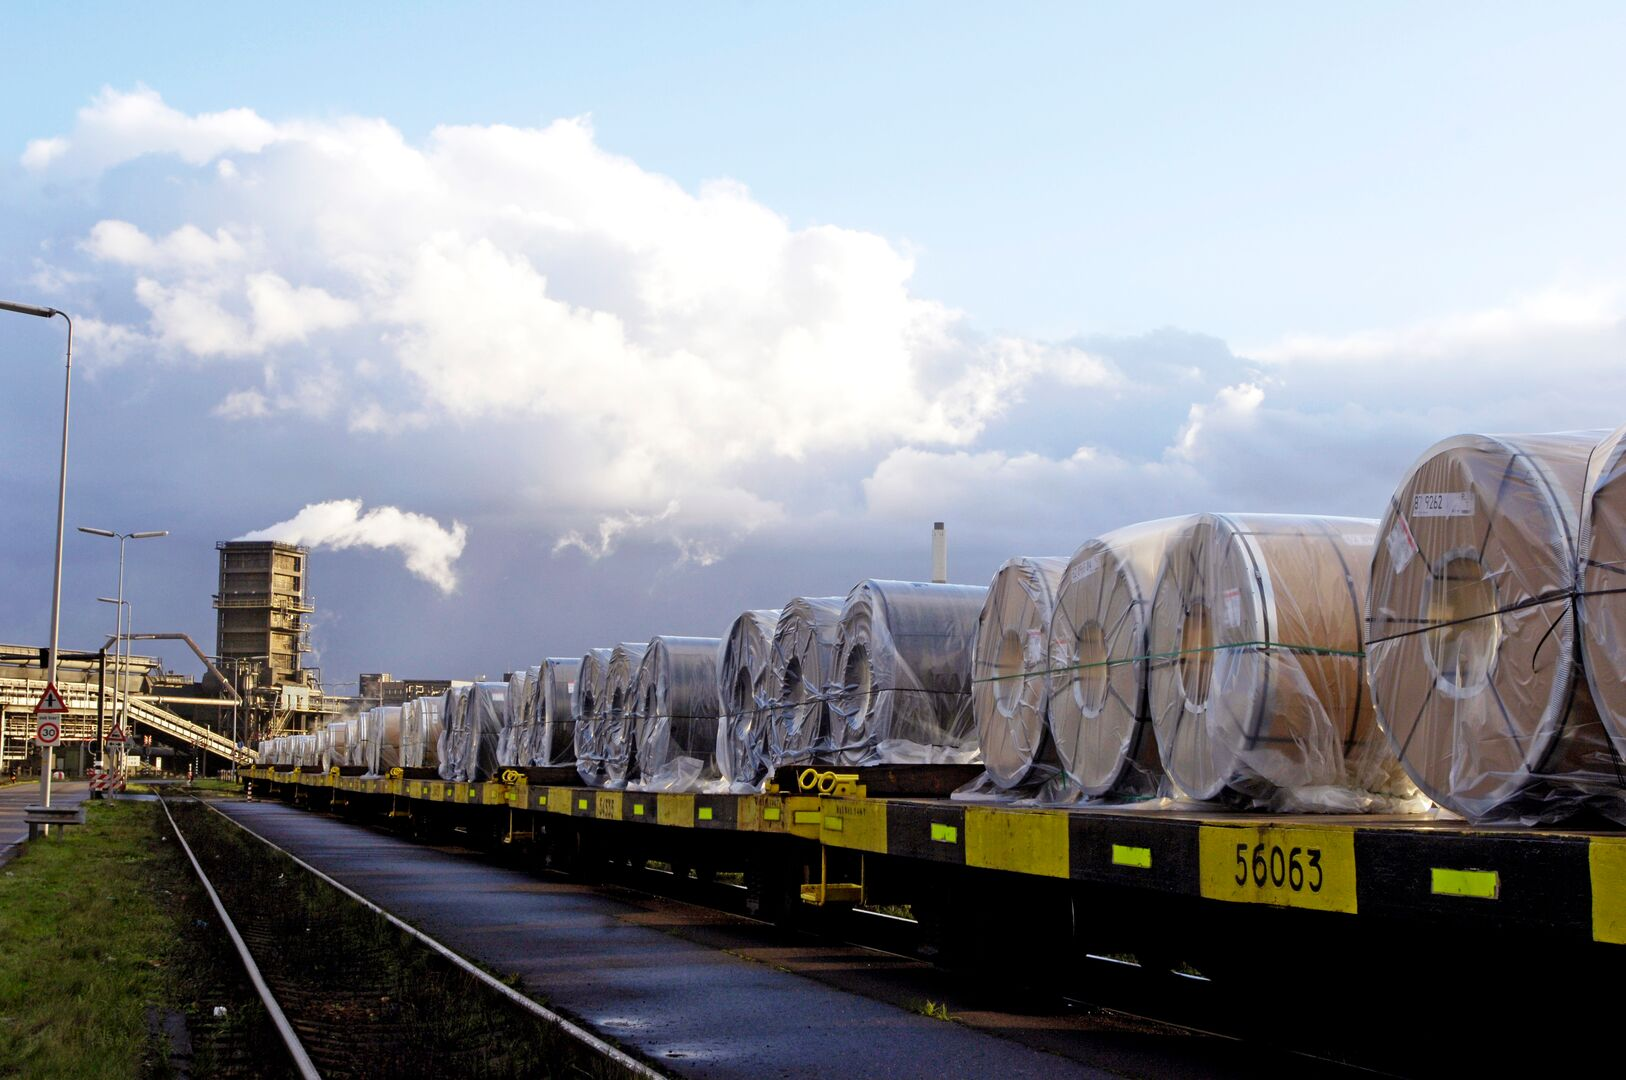 Steel coils stacked, ready for transportation